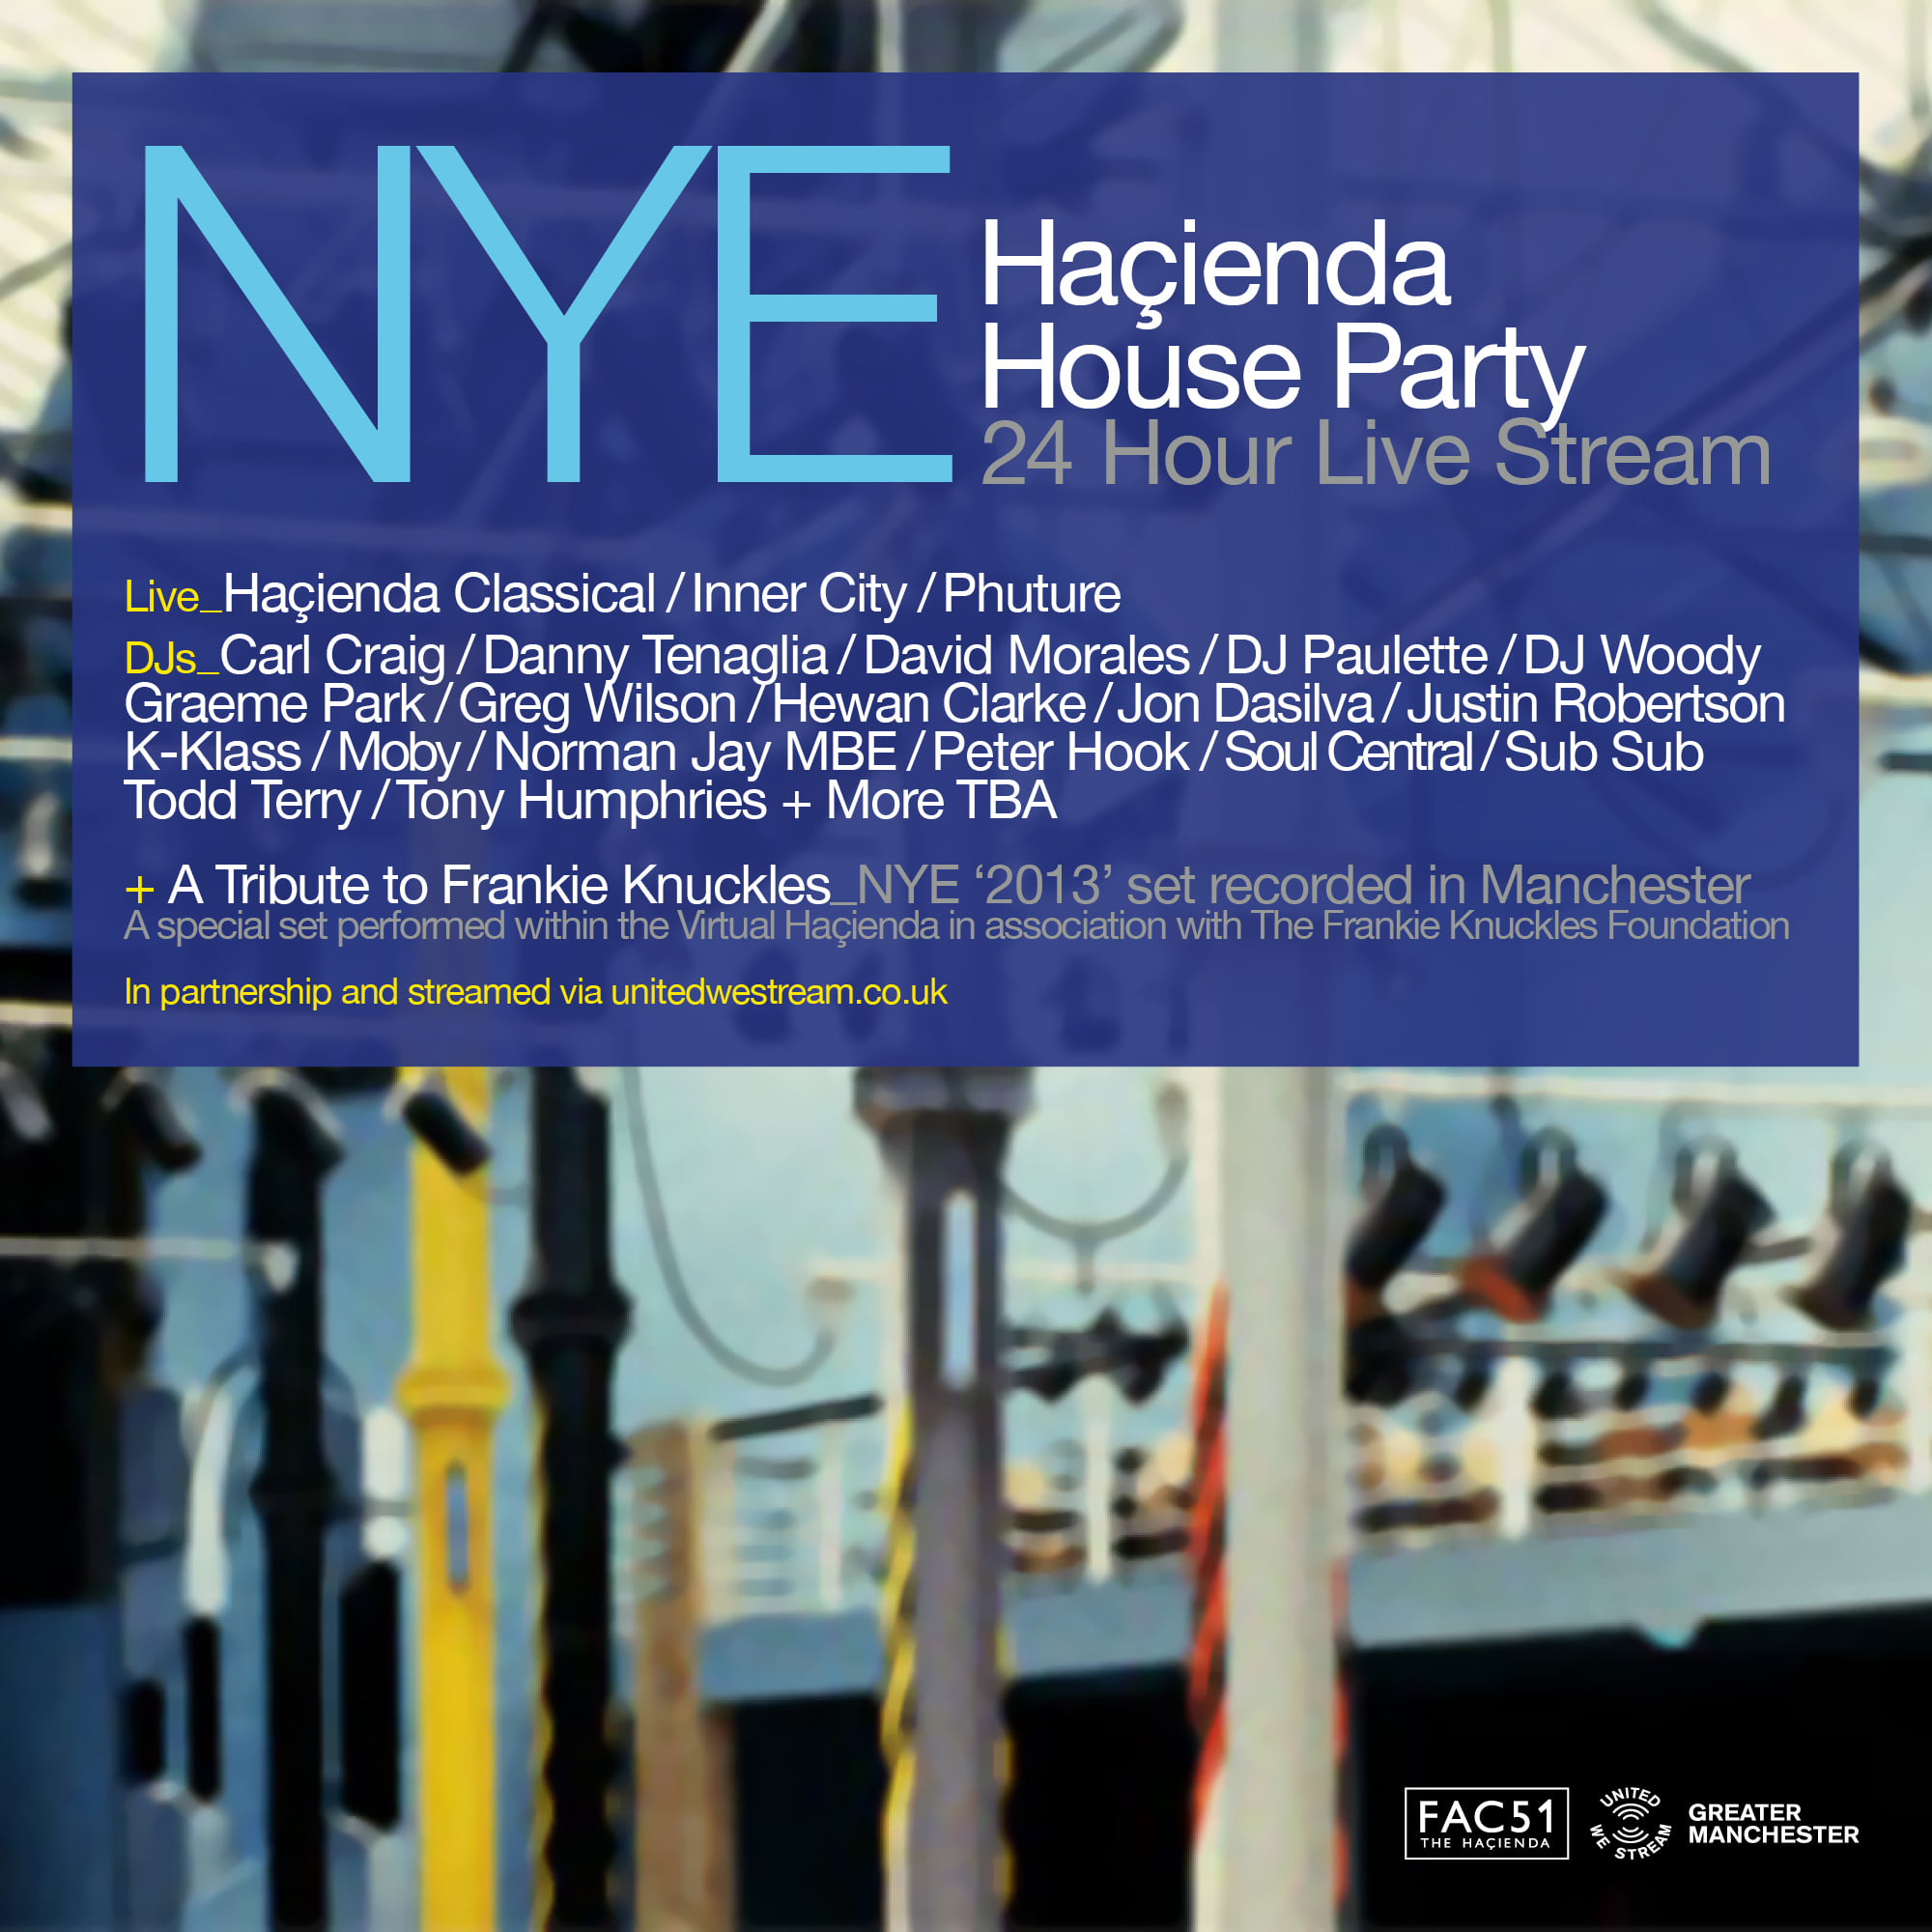 Hacienda flyer